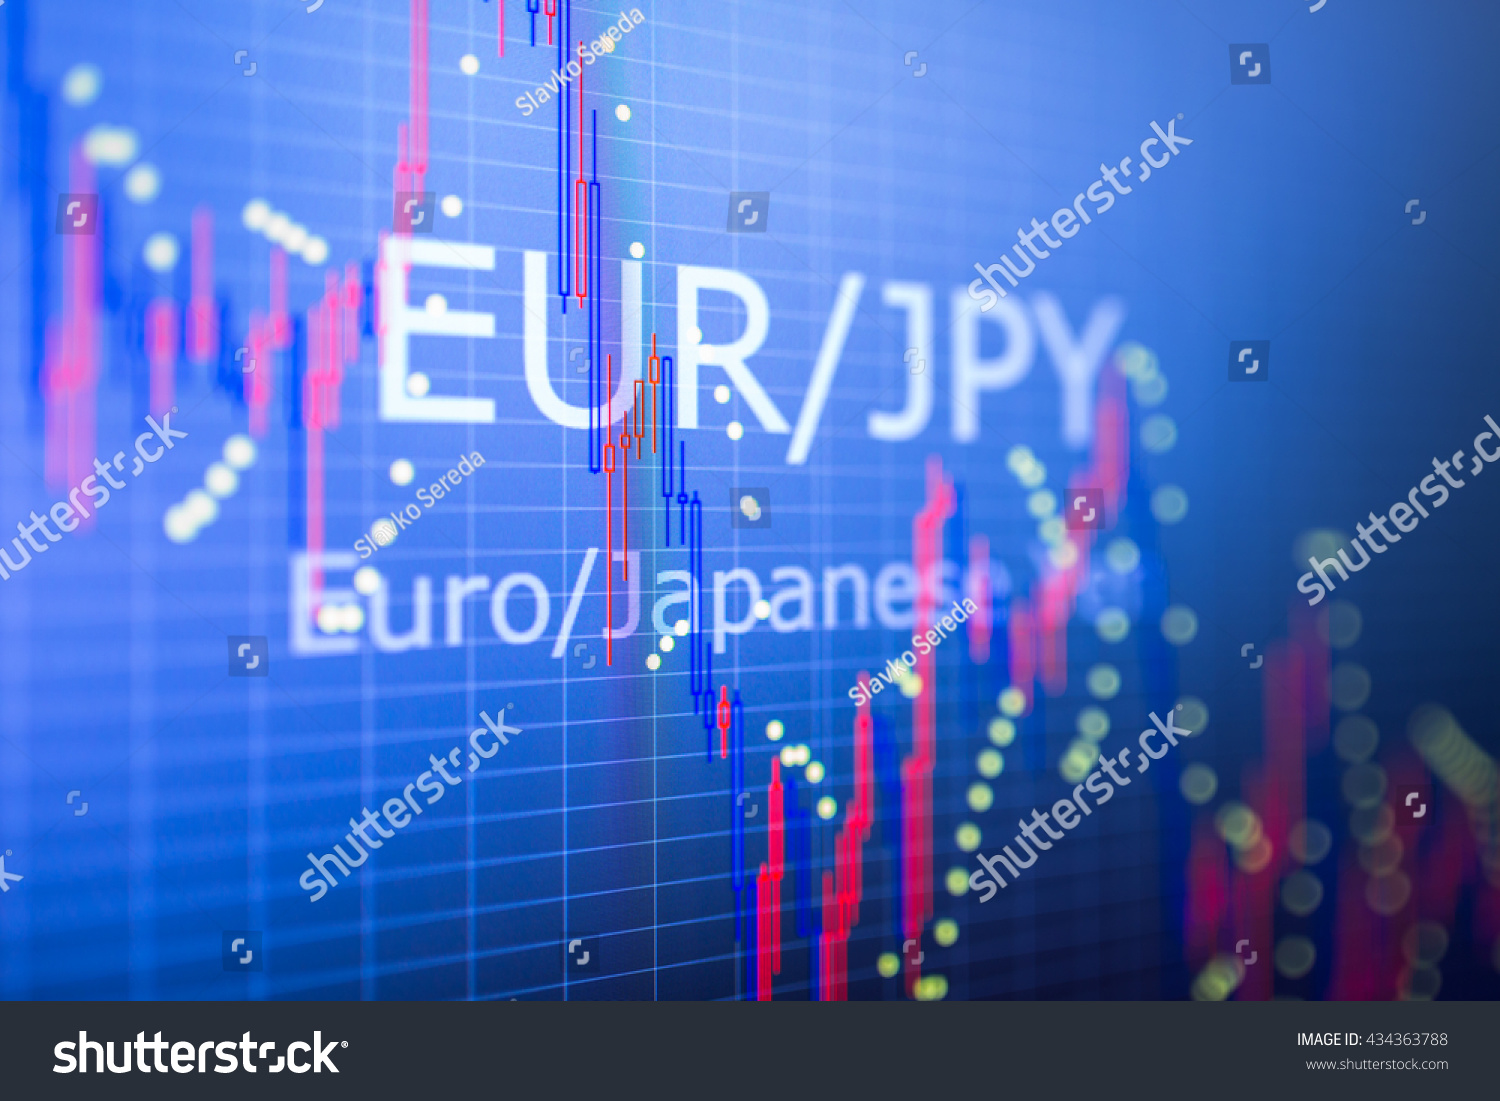 Analyzing Quotes Data Analyzing Foreign Finance Market Charts Stock Photo 434363788